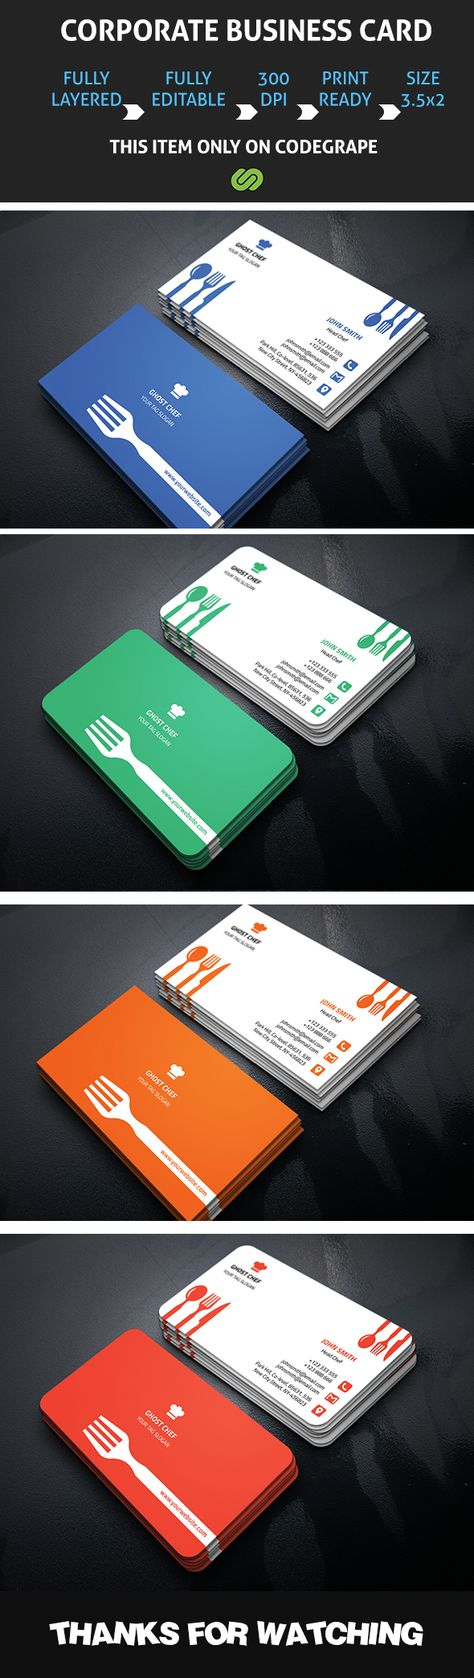 102 best Business Cards images on Pinterest   Architecture, Custom ...